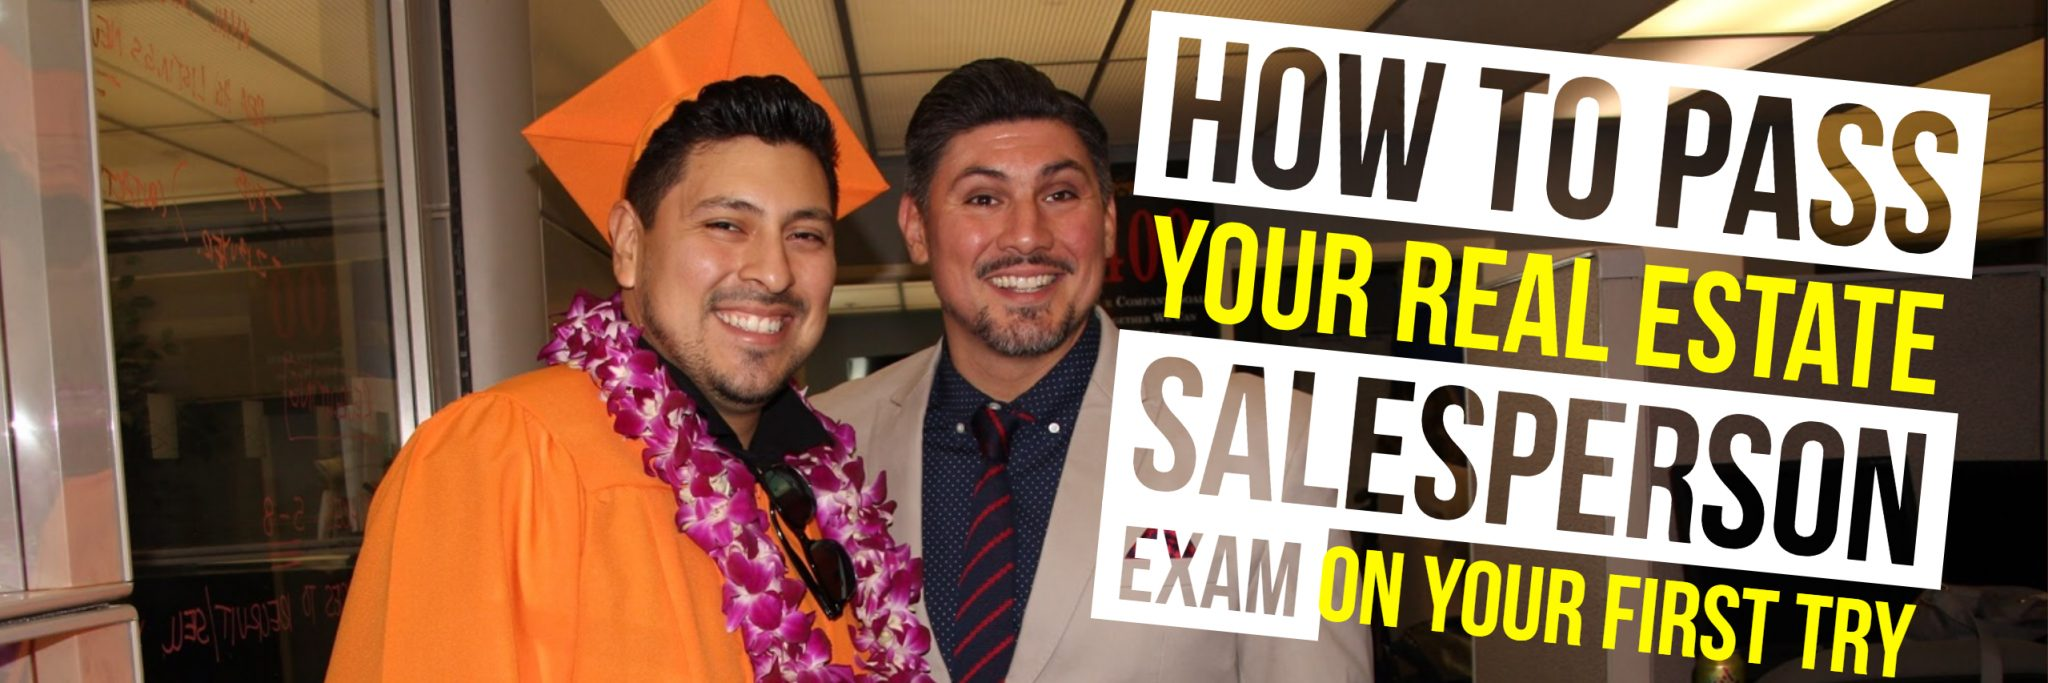 HOW TO PASS YOUR REAL ESTATE SALESPERSON EXAM ON YOUR FIRST TRY (Banner)